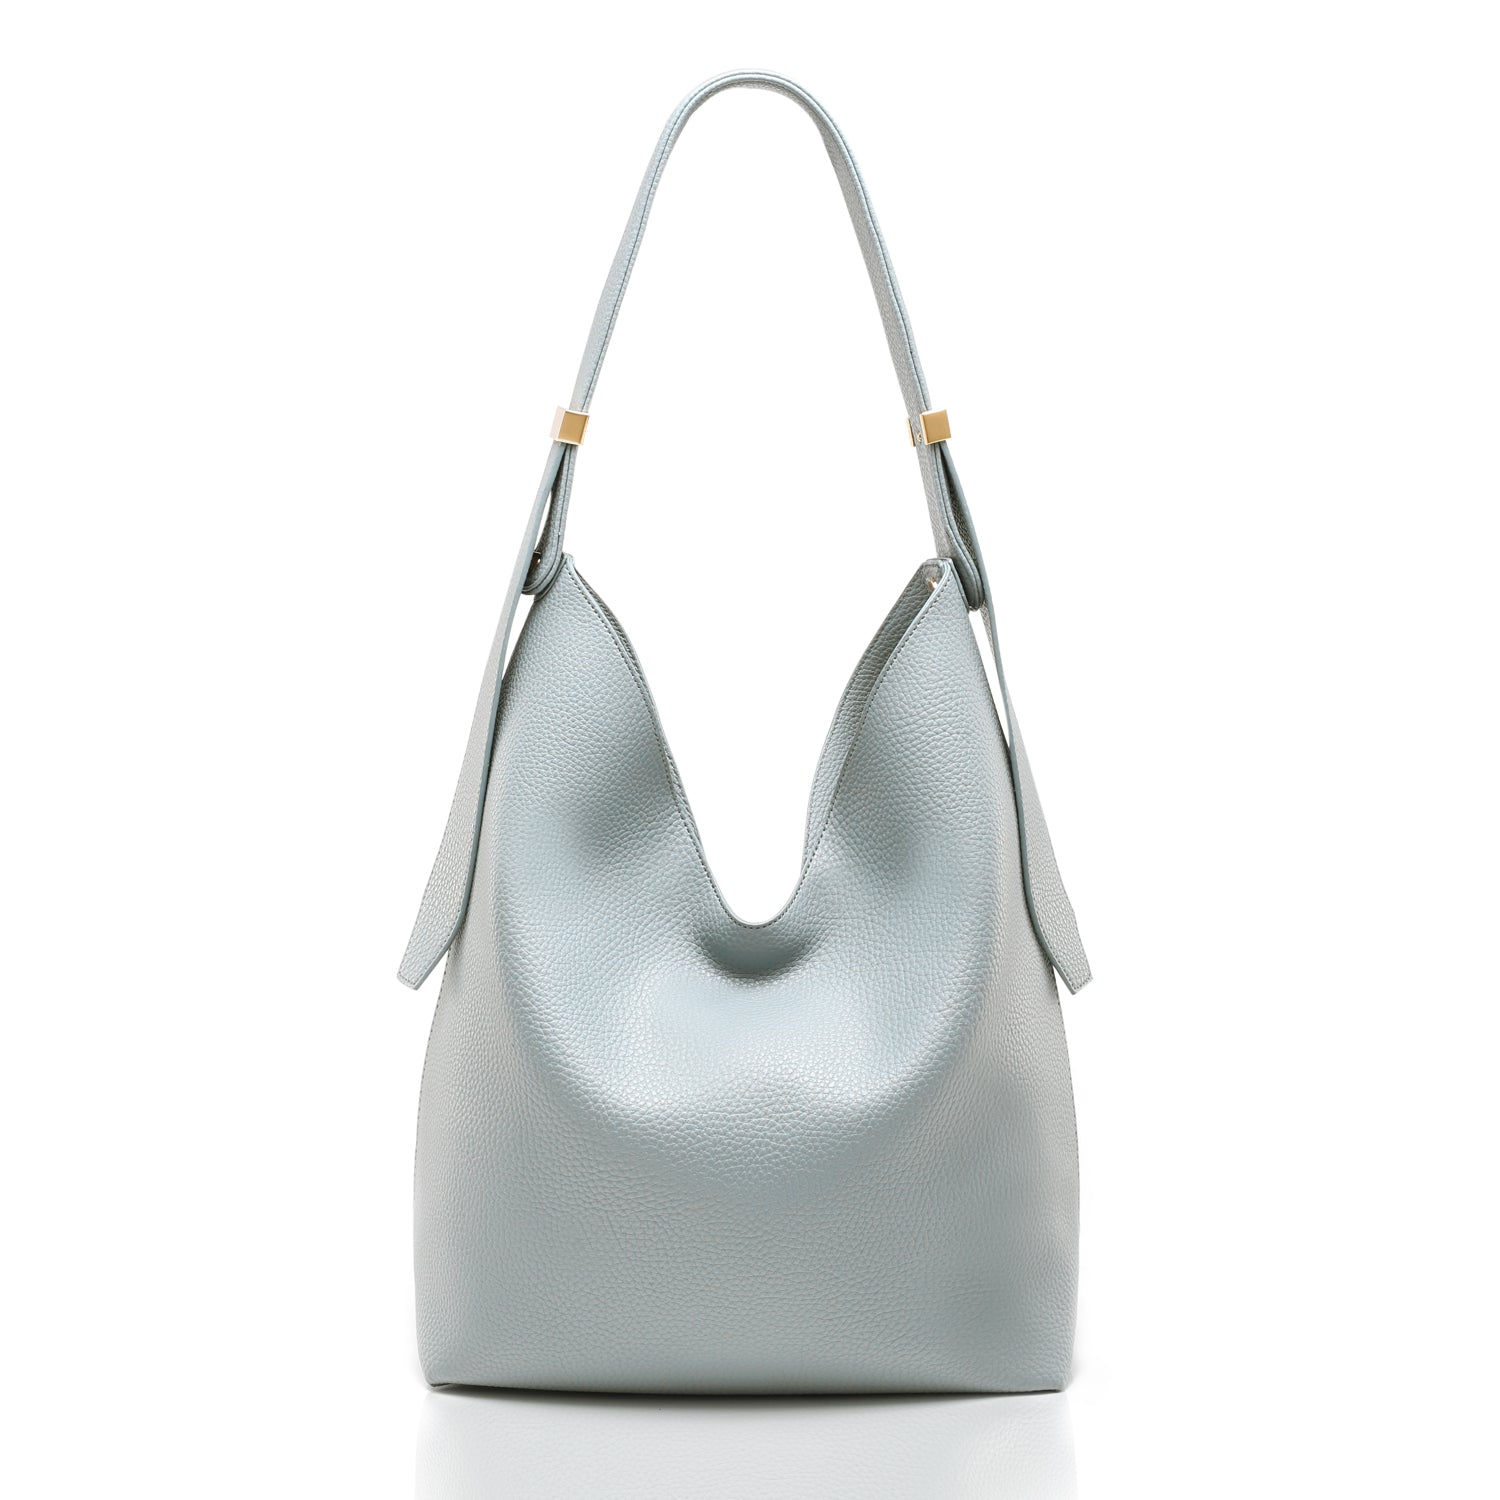 RIBAG HOBO - GLACIER BLUE